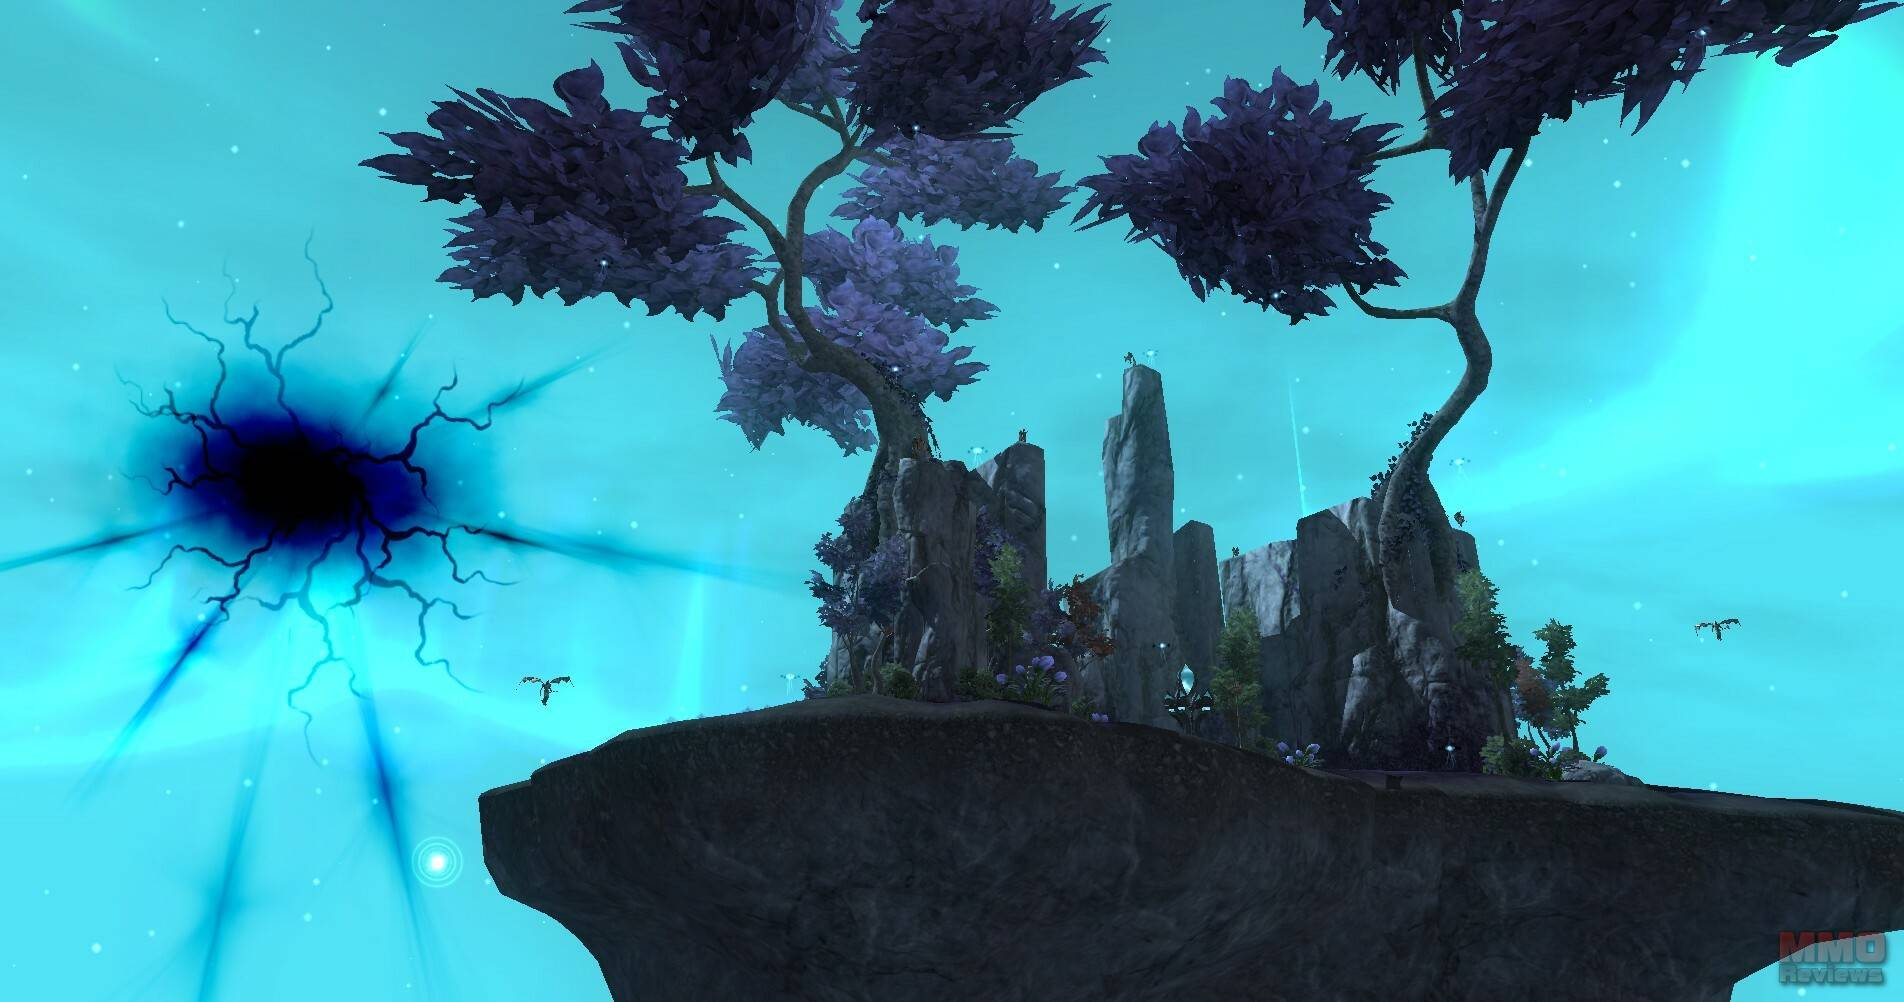 We take a look at EverQuest II tenth expansion